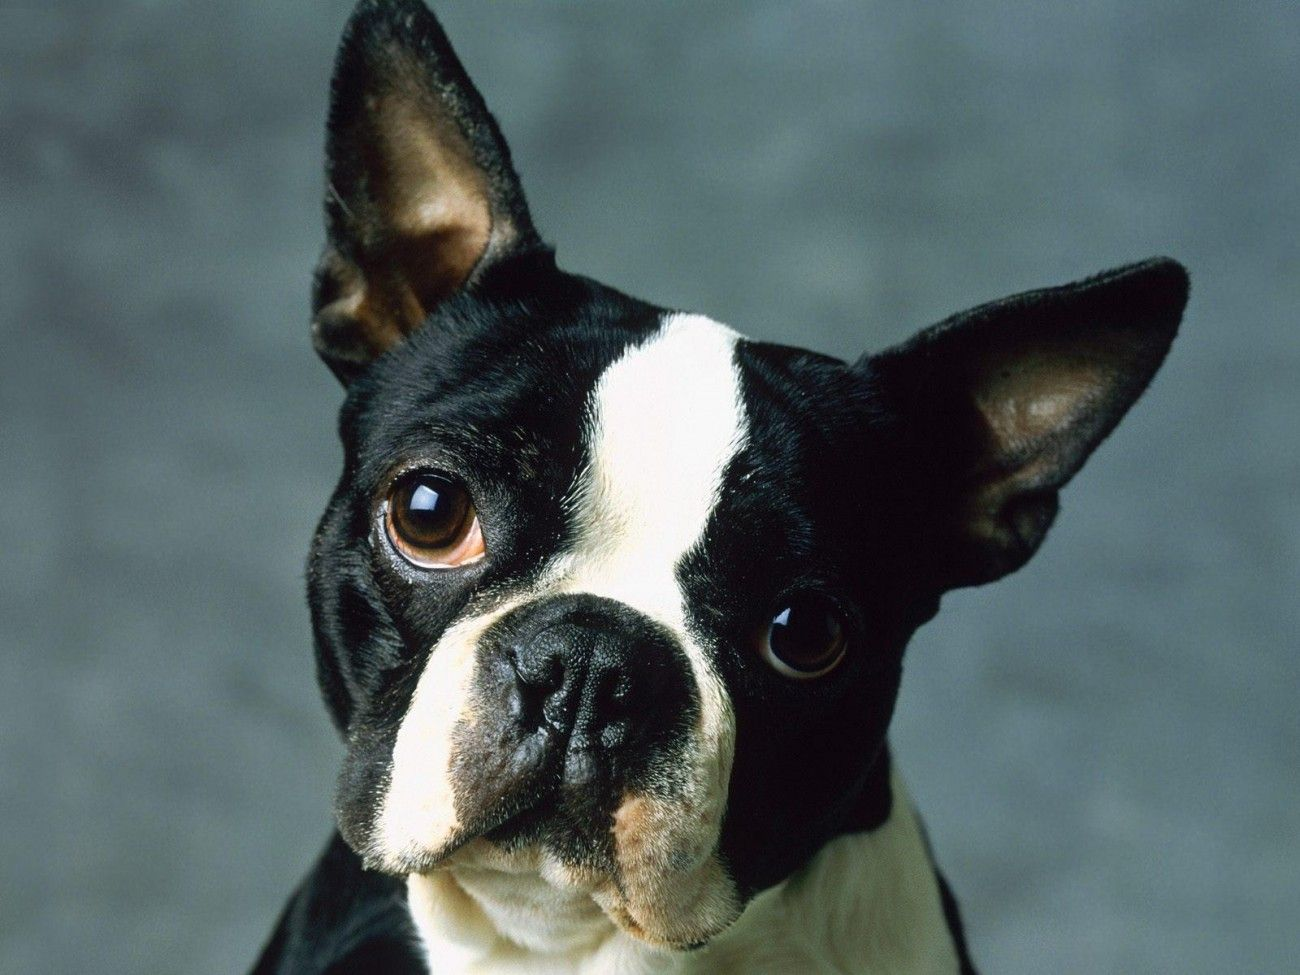 Boston Terrier Dog Wallpaper | Animals | Pinterest | Dog wallpaper ...